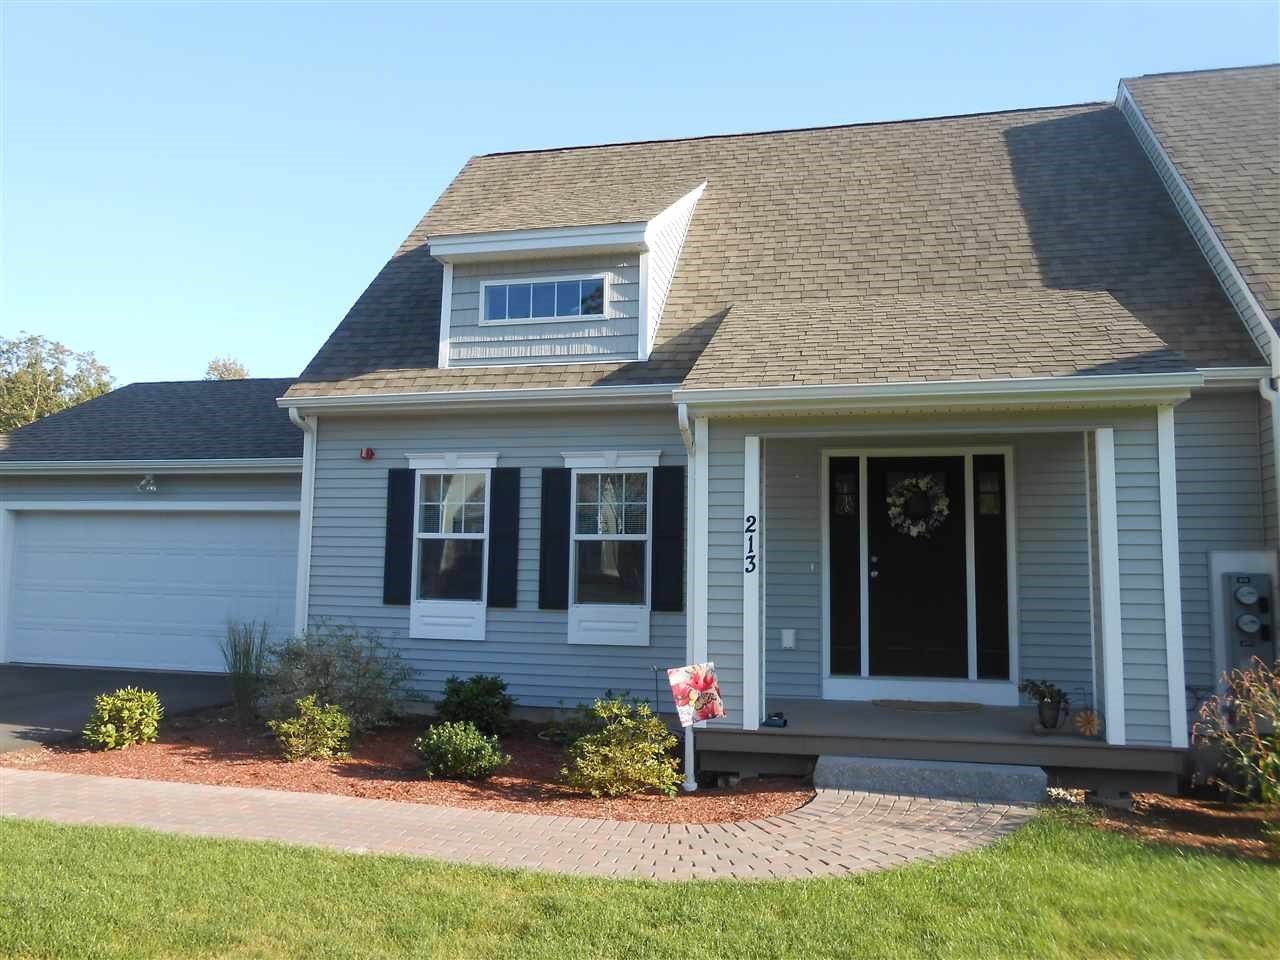 213 Villager Road #47, Chester, NH 03036 - MLS 4600068 - Coldwell Banker